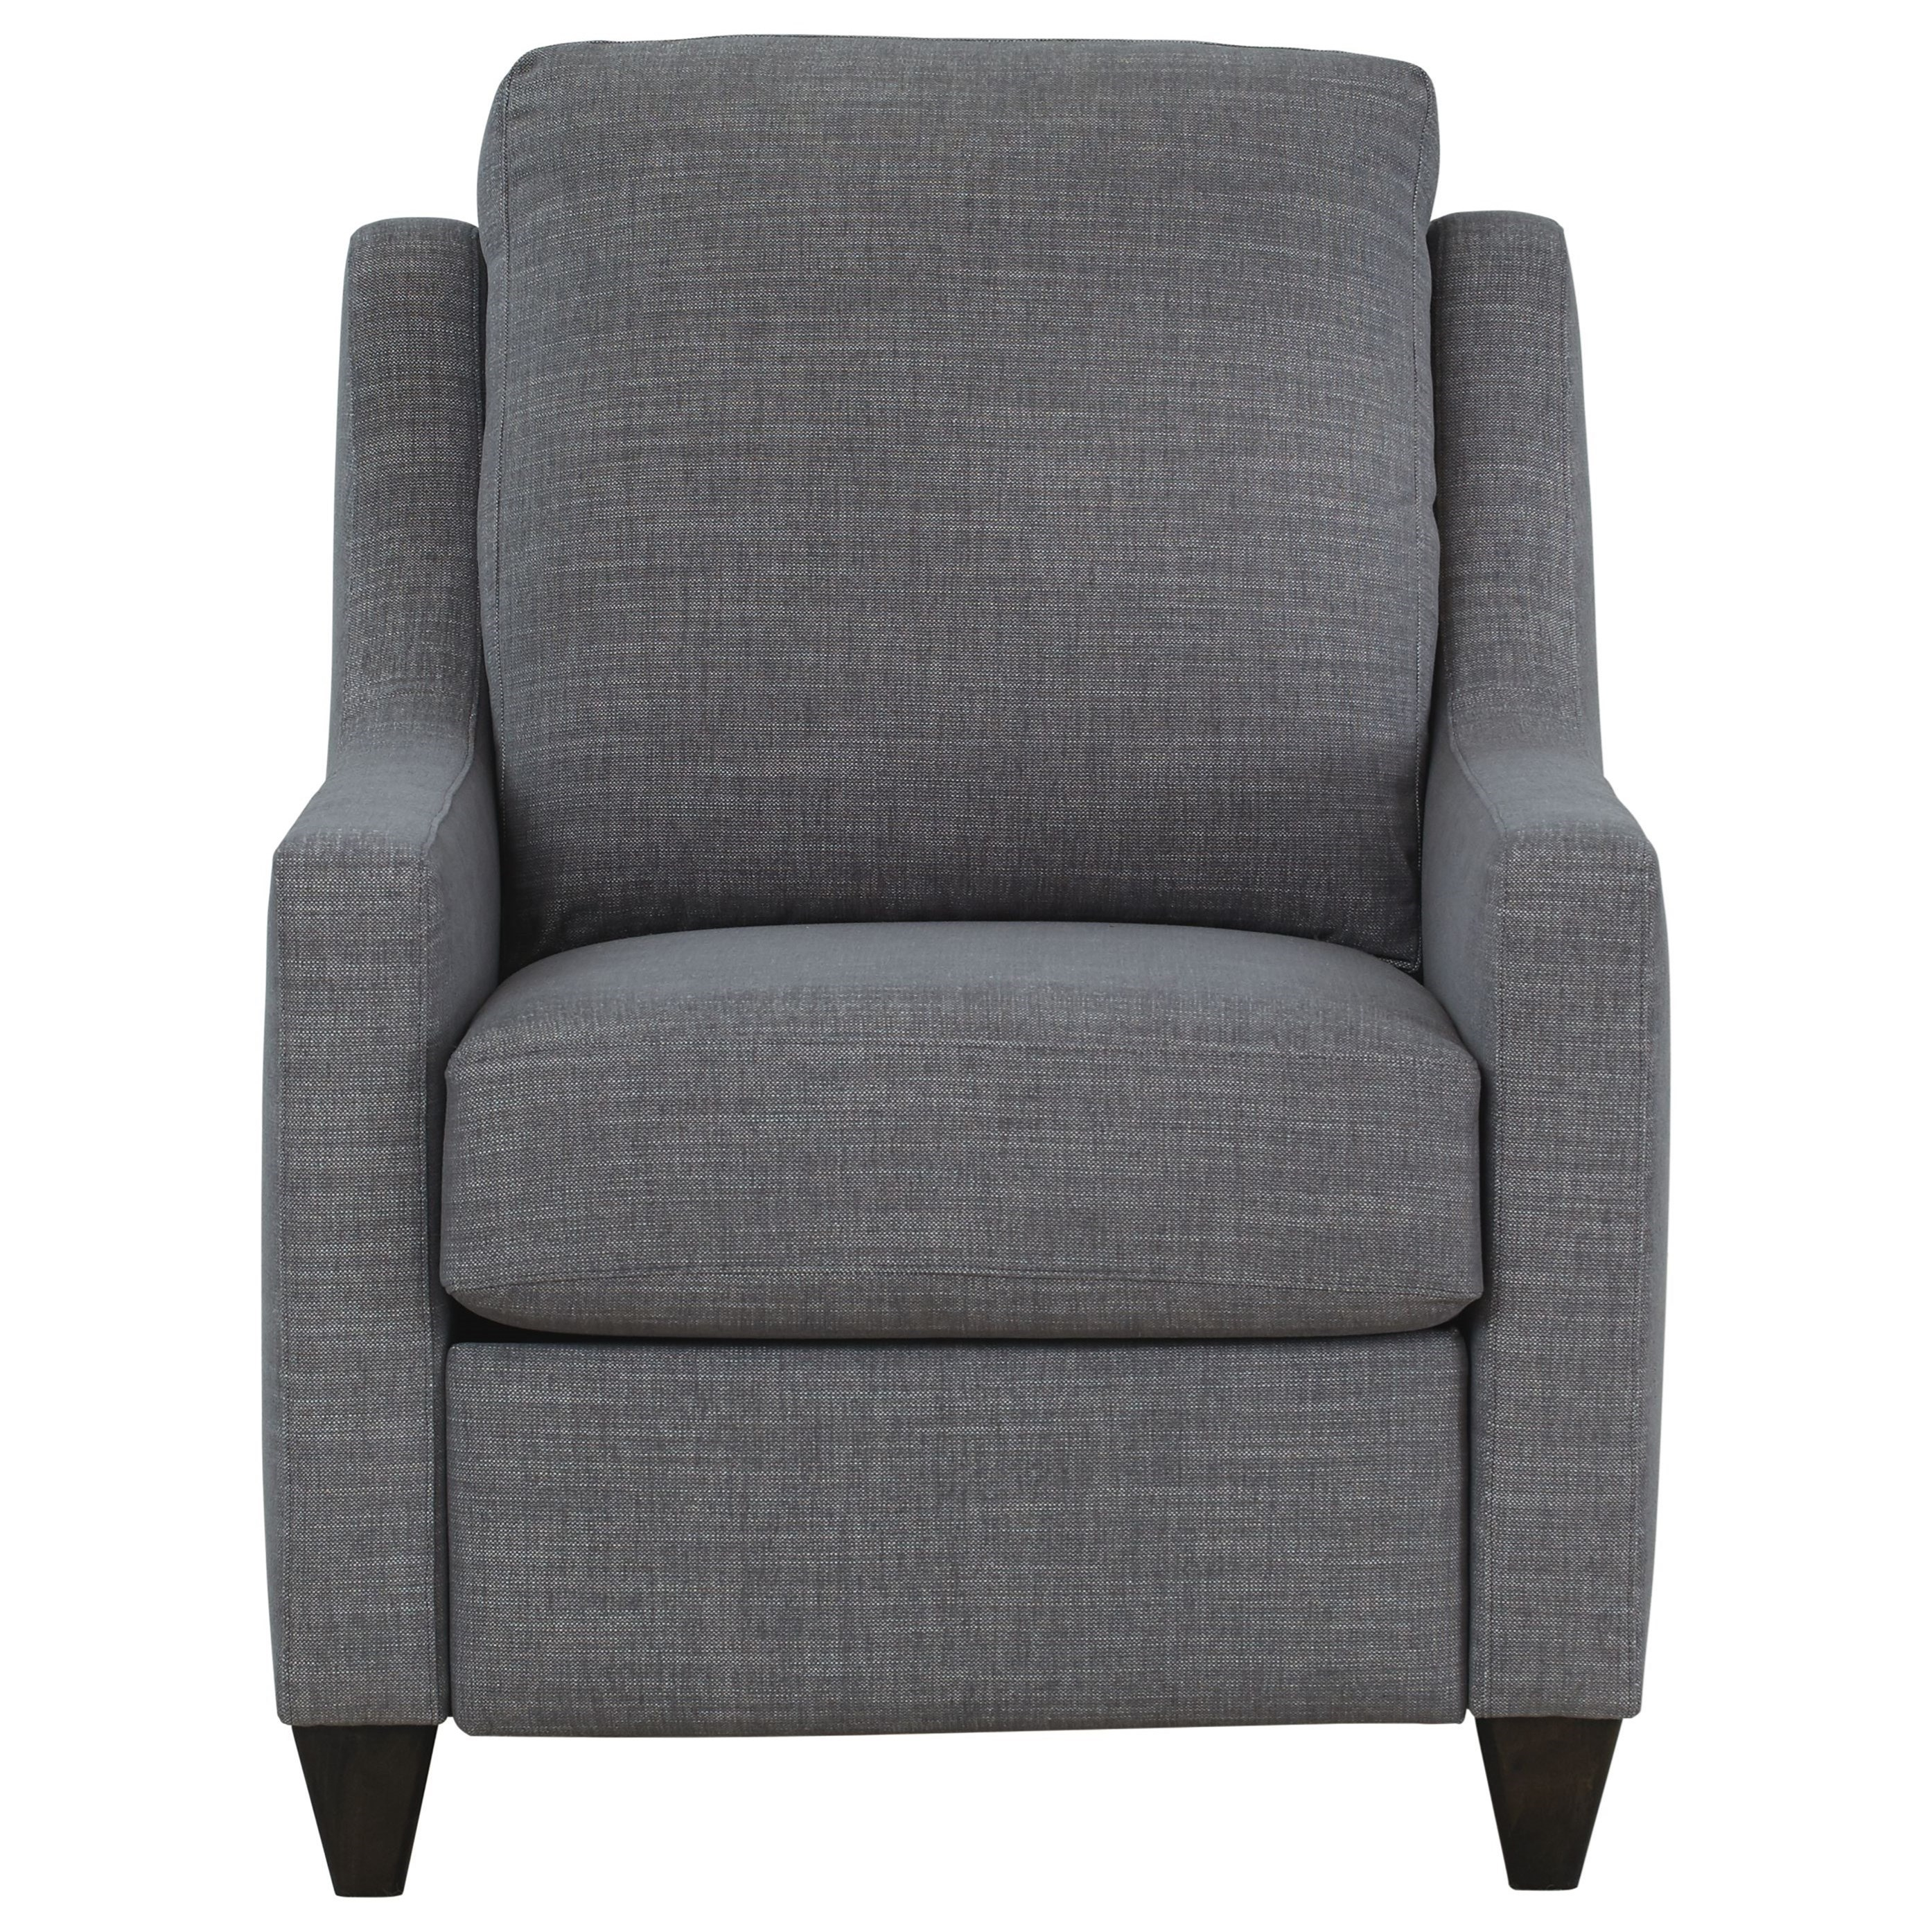 Magnificent Motion Customizable Power Recliner by Bassett at Bassett of Cool Springs